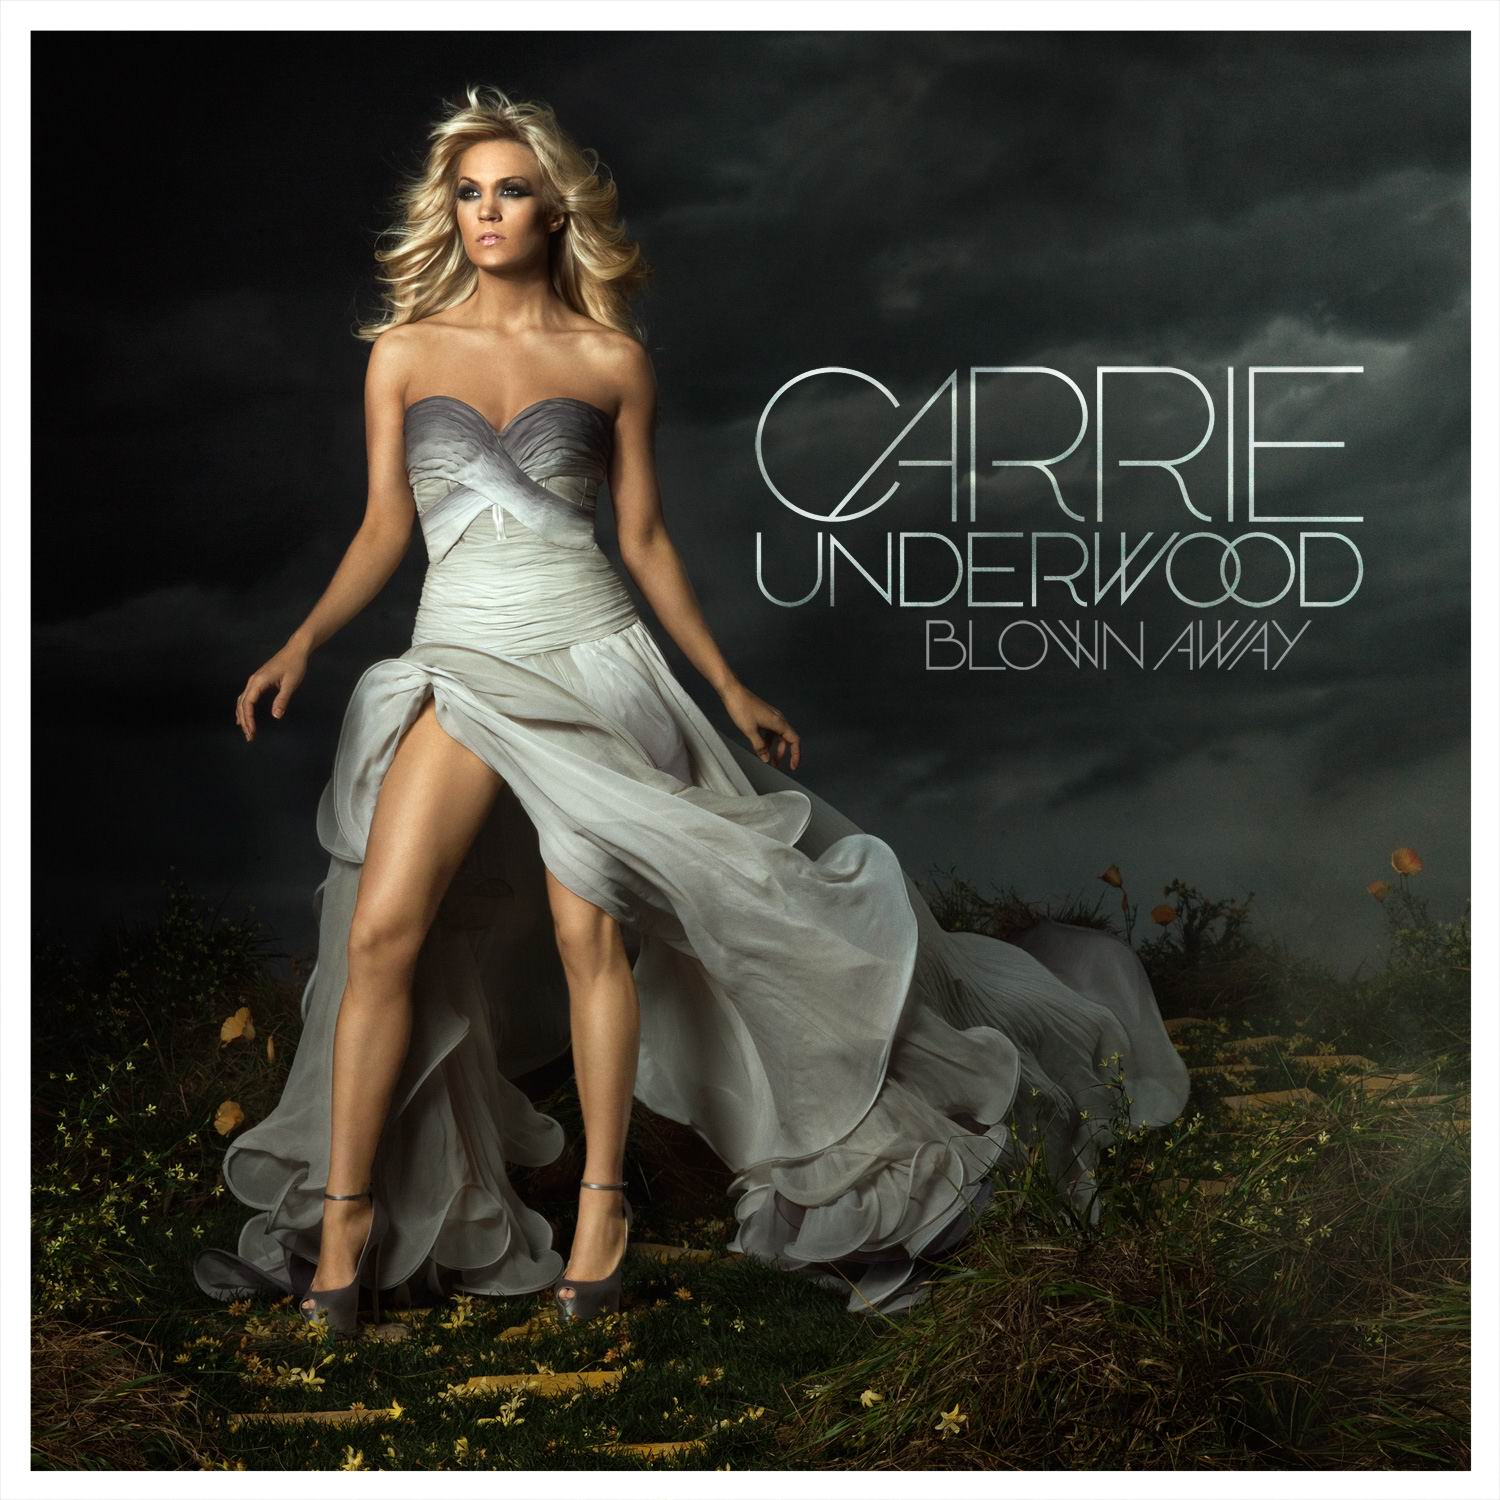 Carrie underwood gif on gifer by augar.